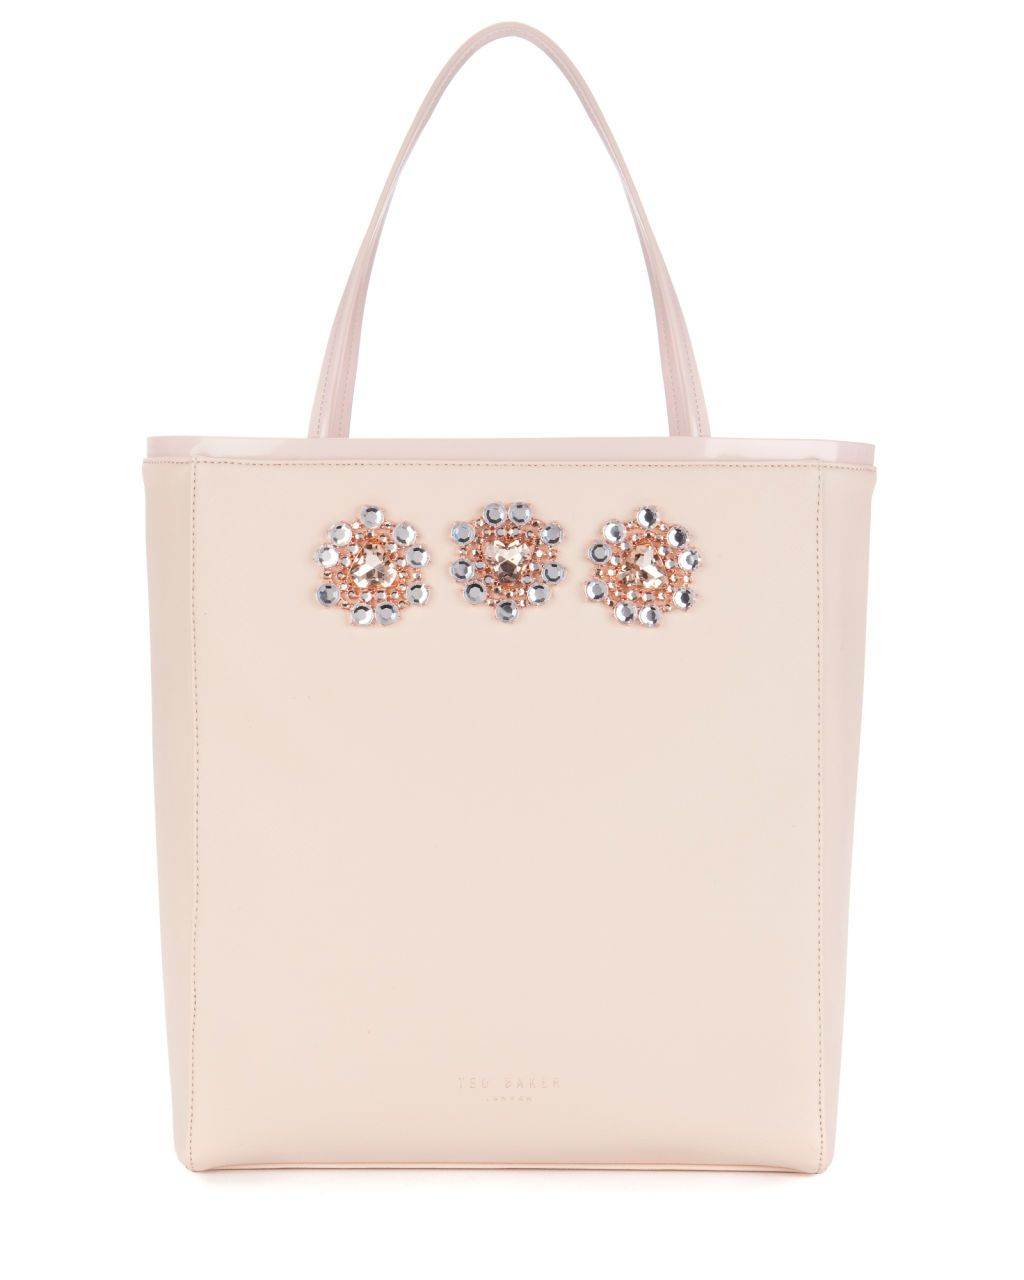 13e53c2a77d2 Ted Baker GEMMINA Jewelled shopper in Nude Pink